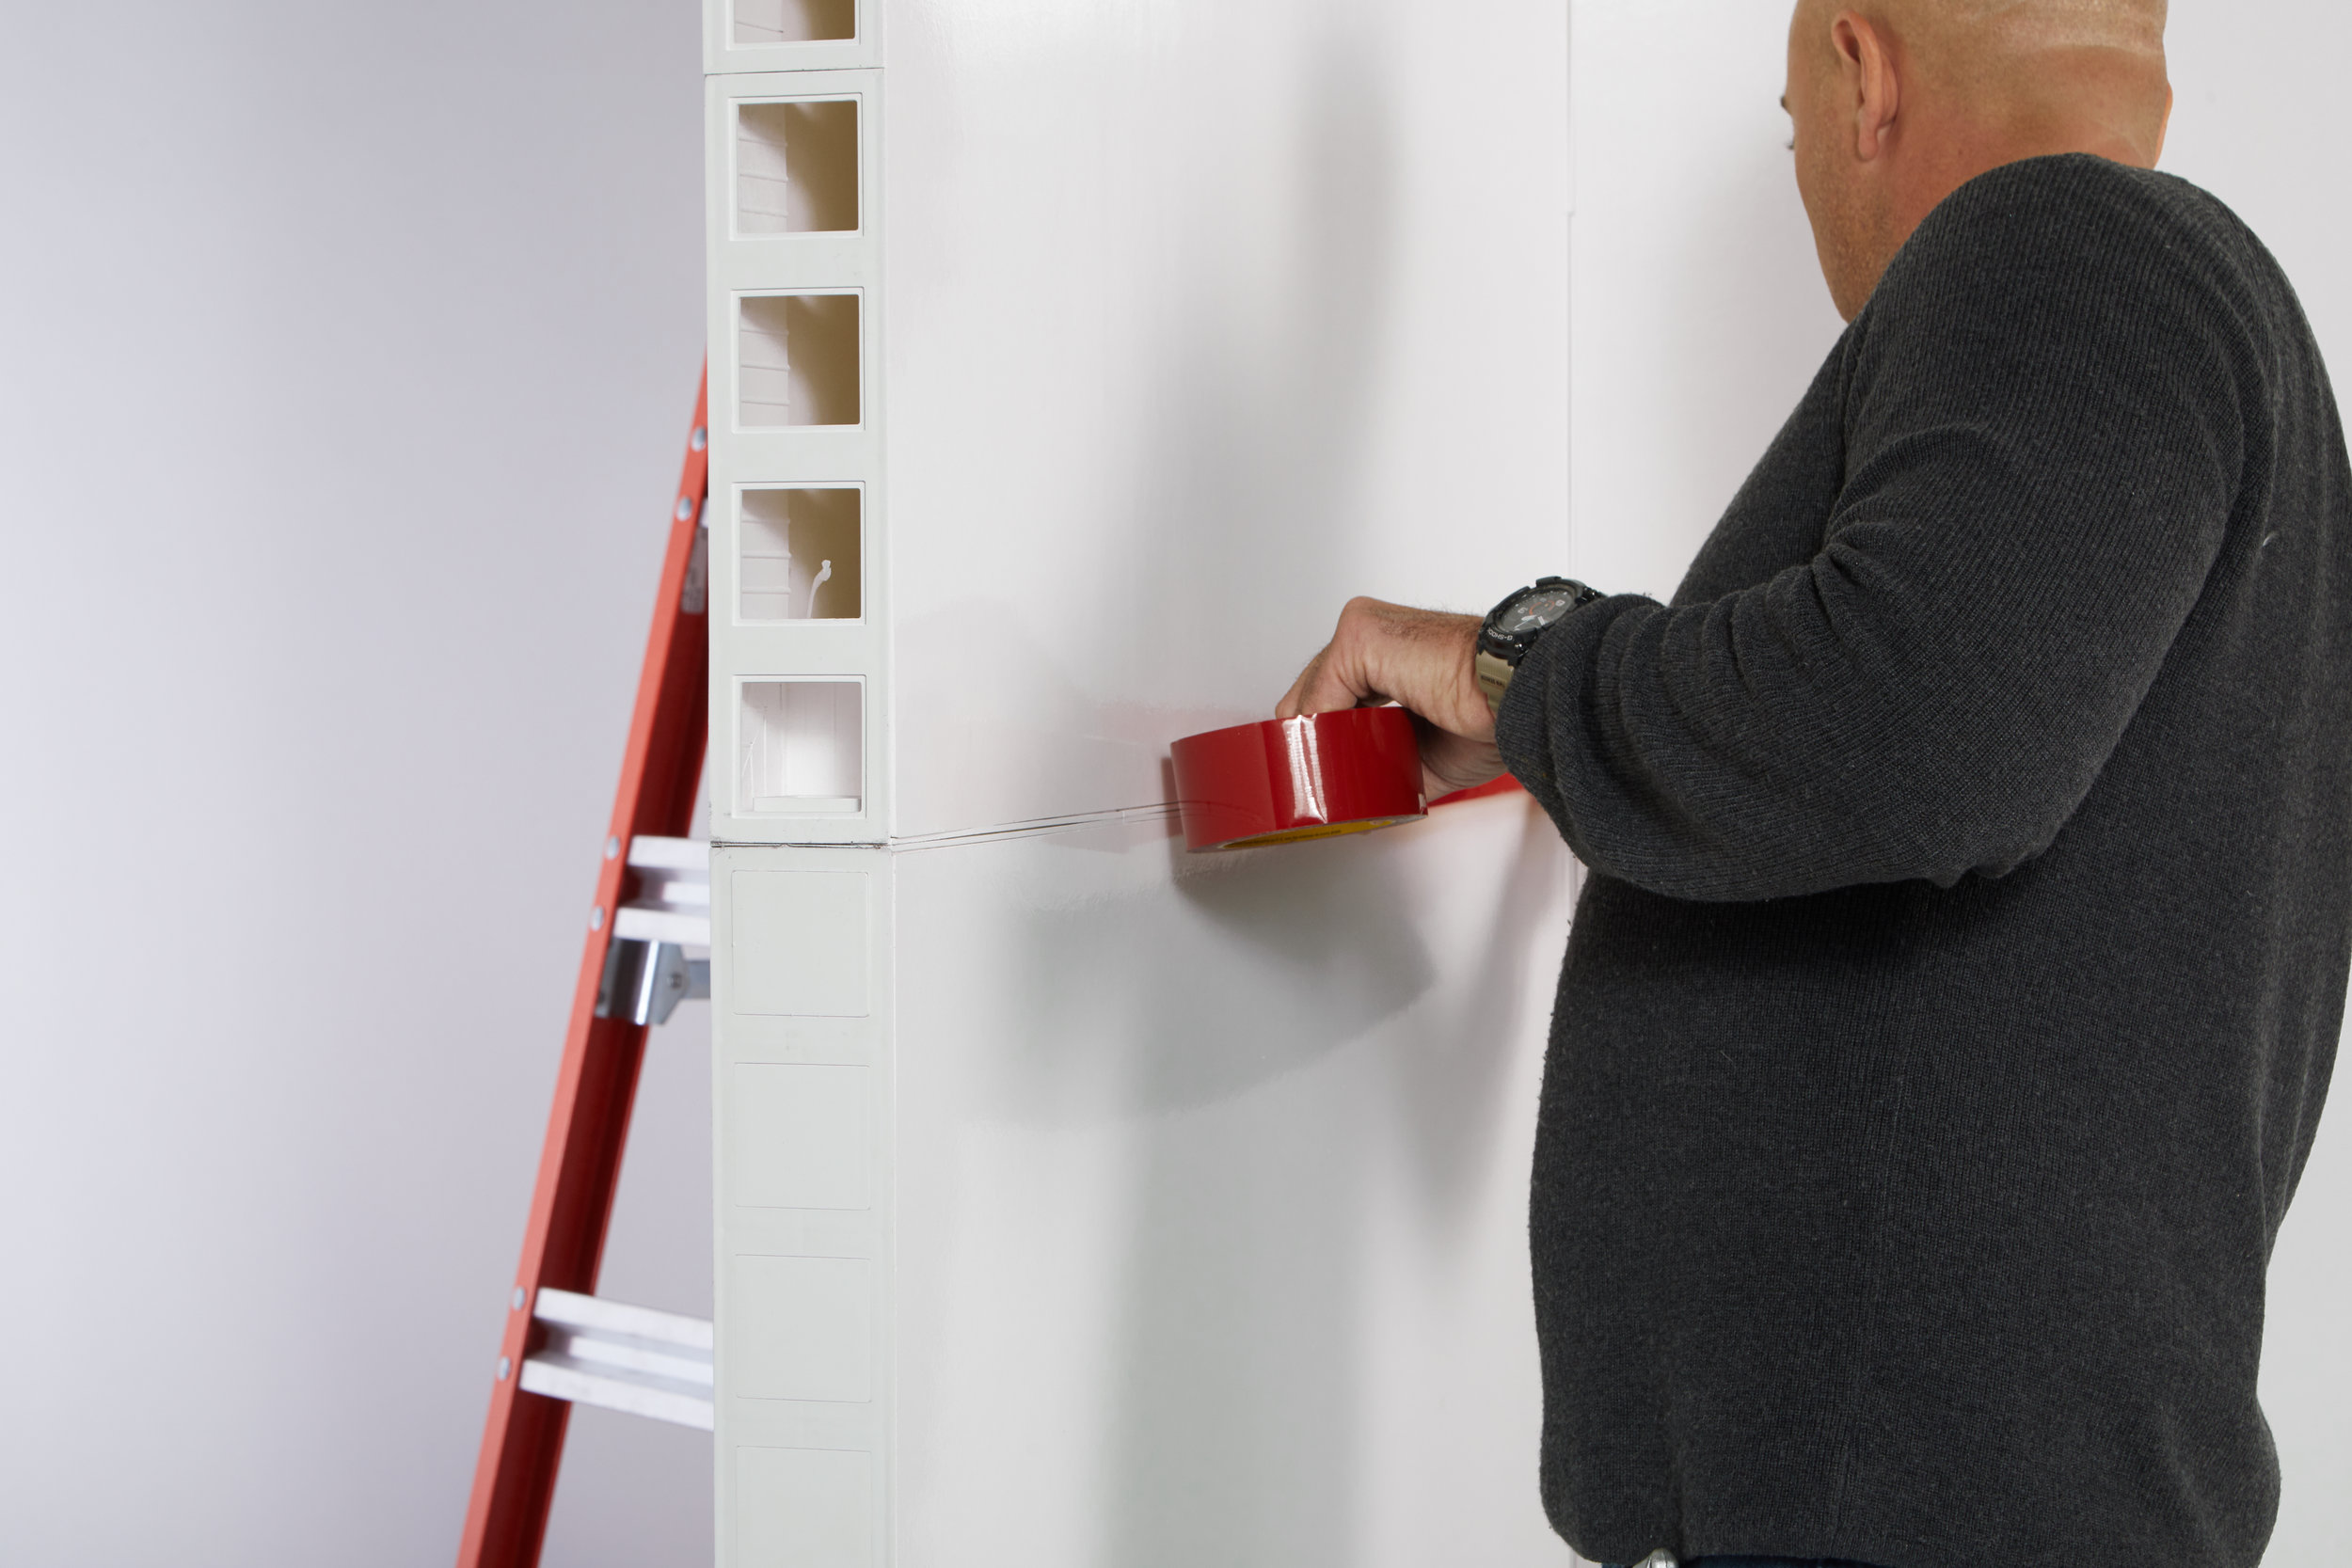 Placing construction seaming tape over seams before installing wallpaper (recommended).